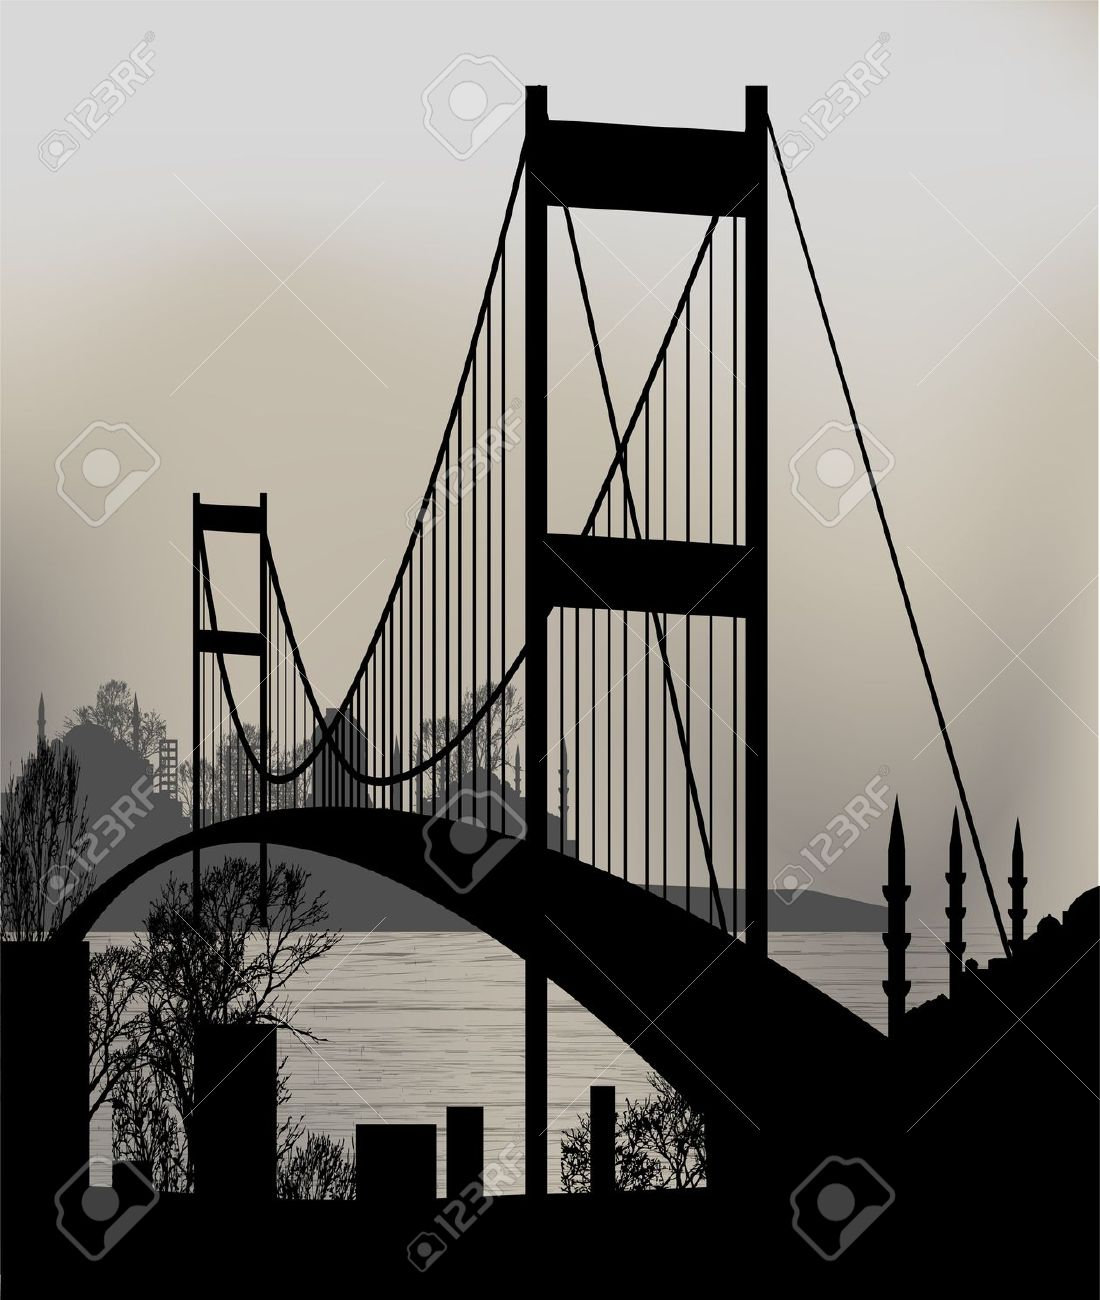 Istanbul clipart #15, Download drawings